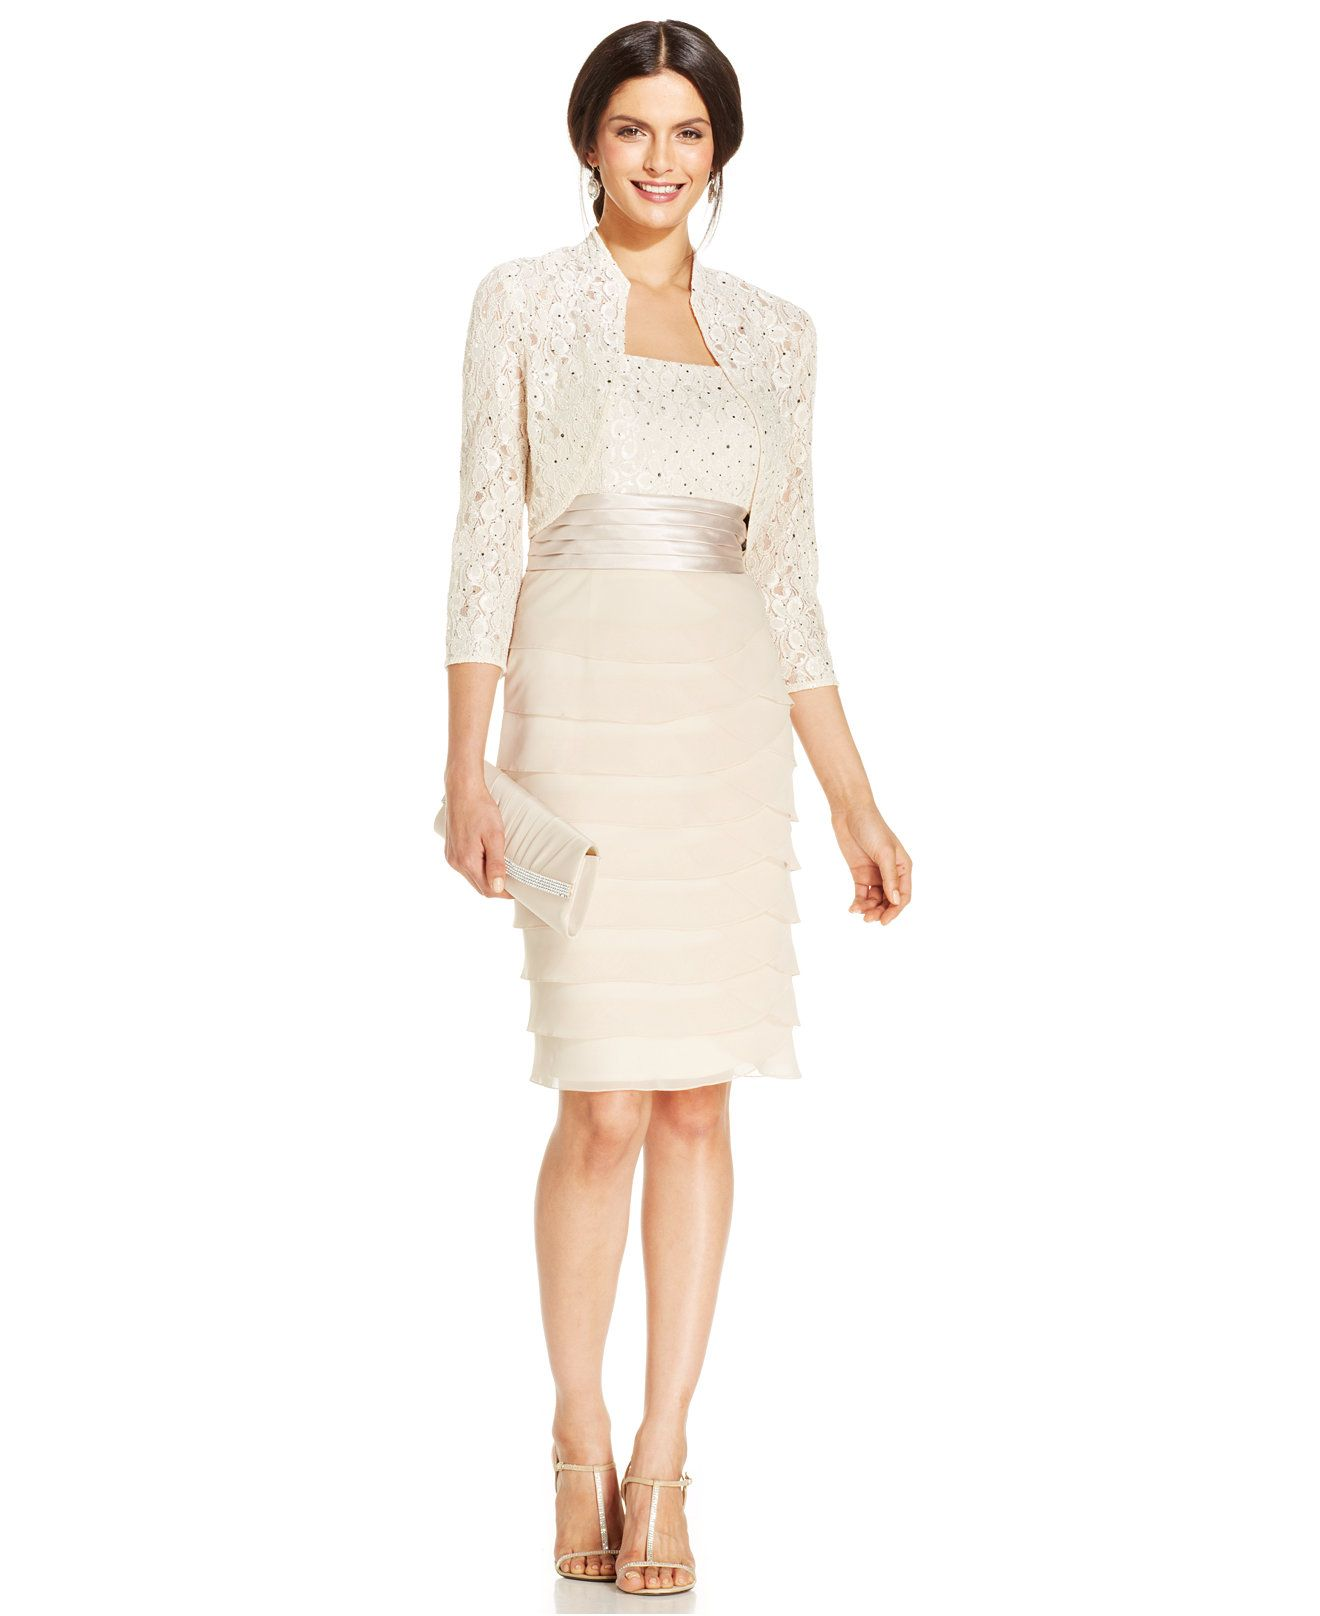 Macy S Wedding Day Dresses: Jessica Howard Sequin-Lace Tiered Sheath And Jacket